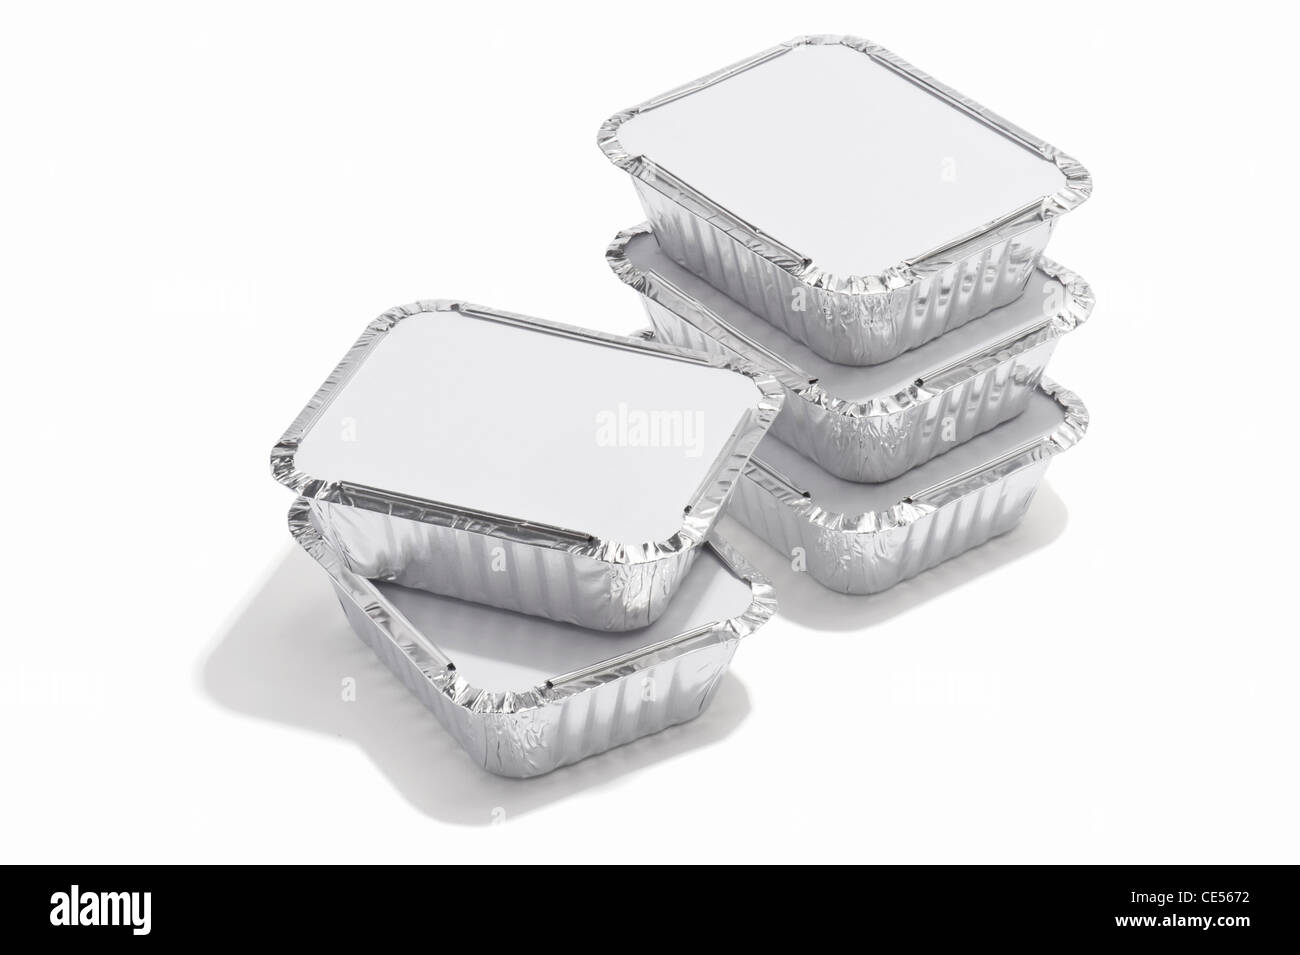 Foil food containers - Stock Image